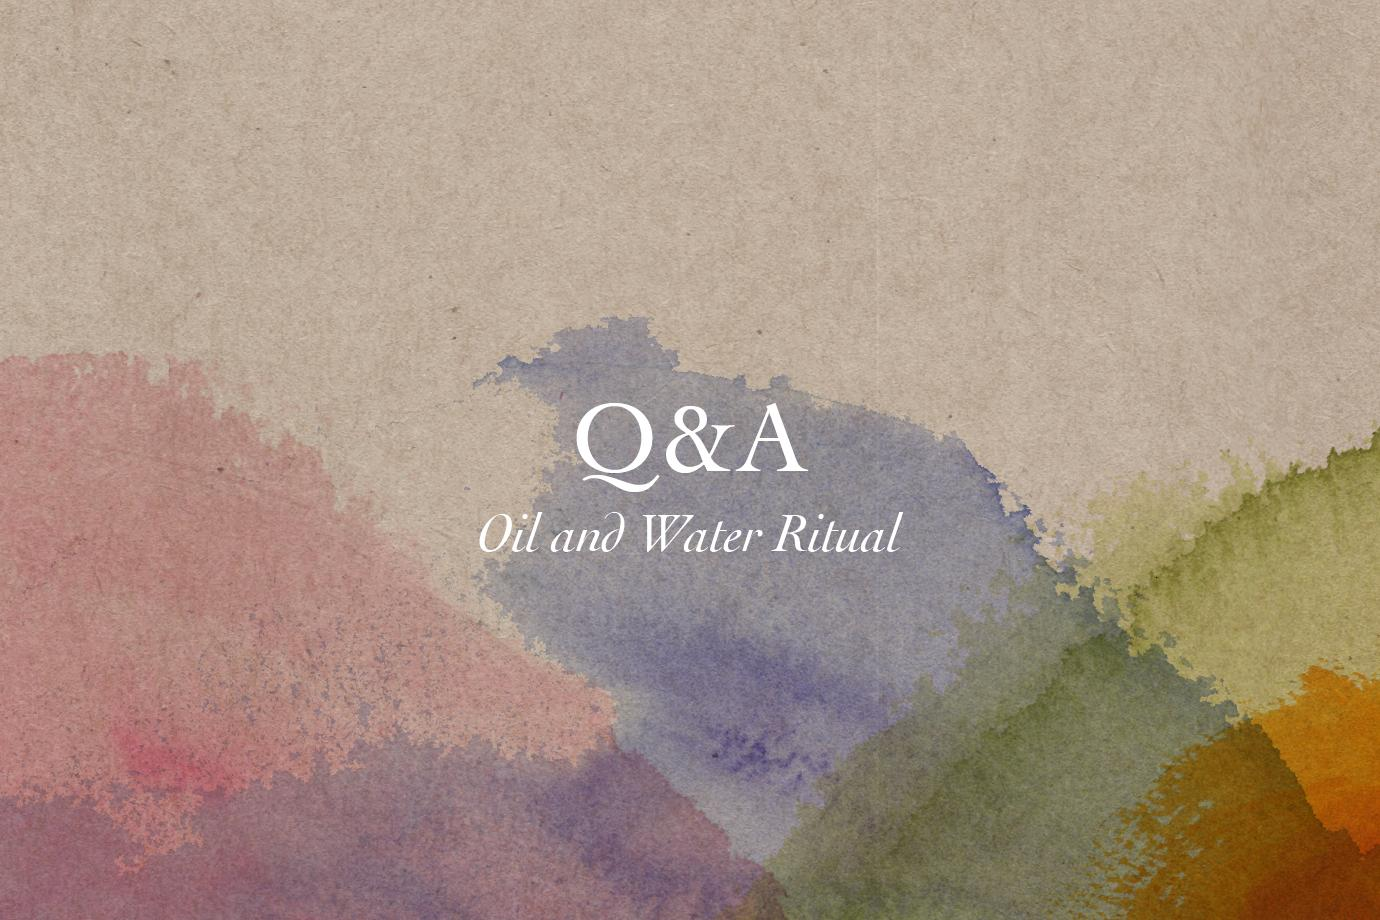 Q & A: Oil and Water Ritual